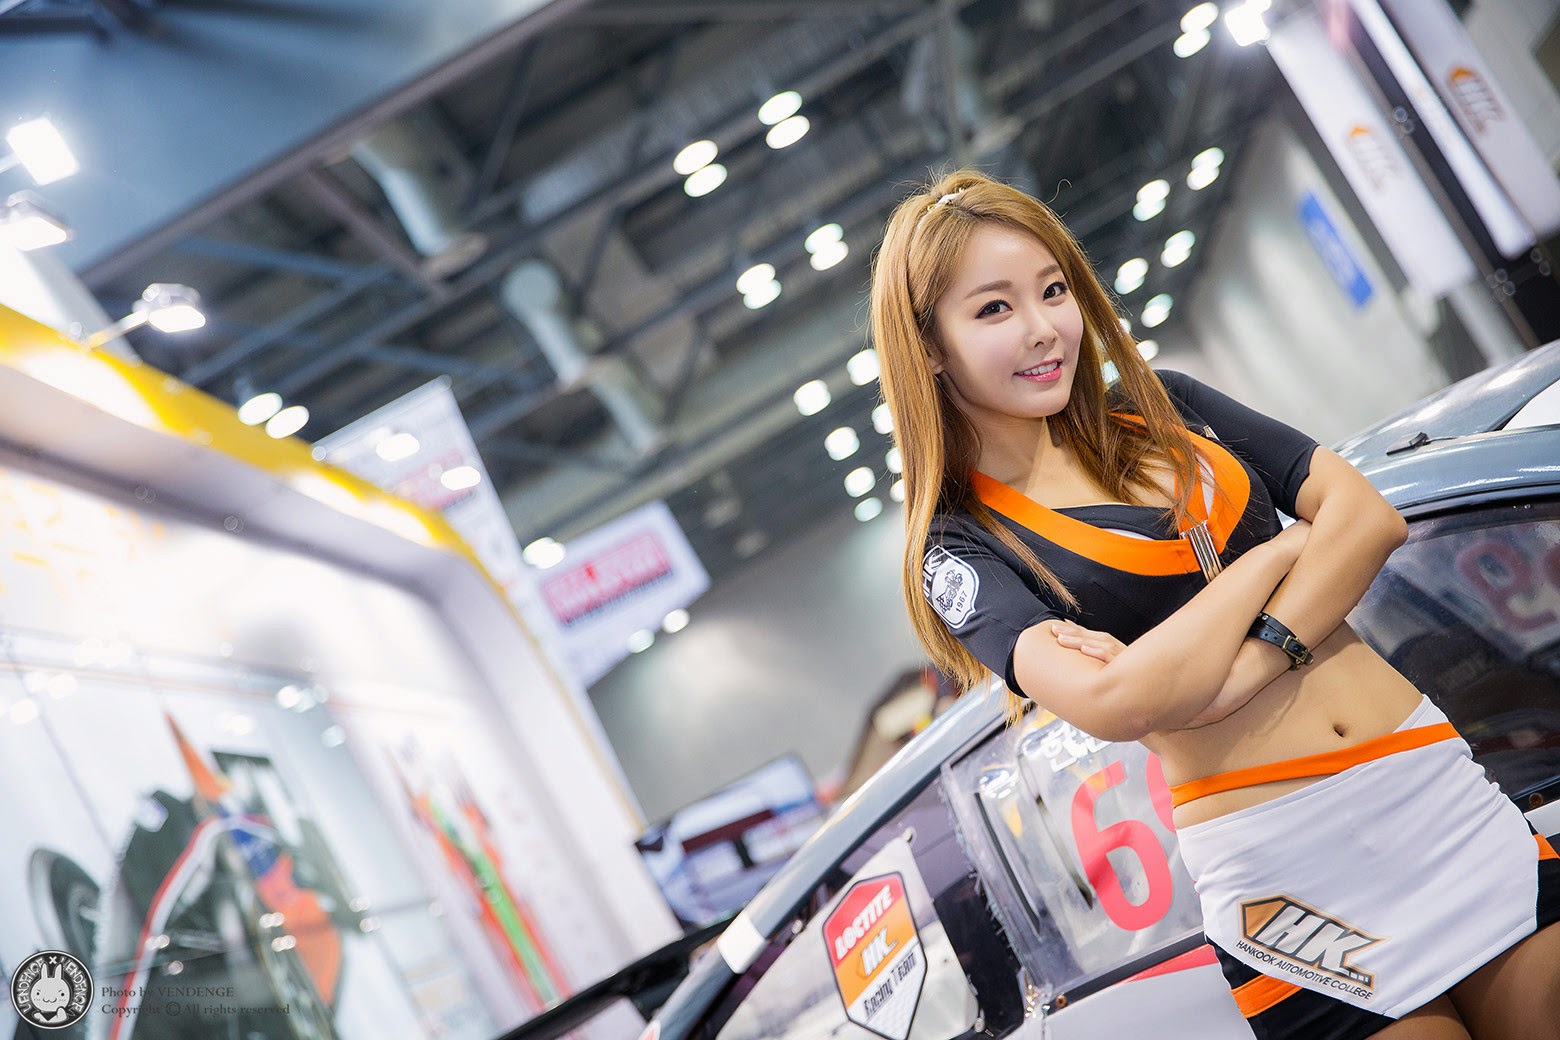 1 Lee Da Hee - Automotive Week 2014 - very cute asian girl-girlcute4u.blogspot.com